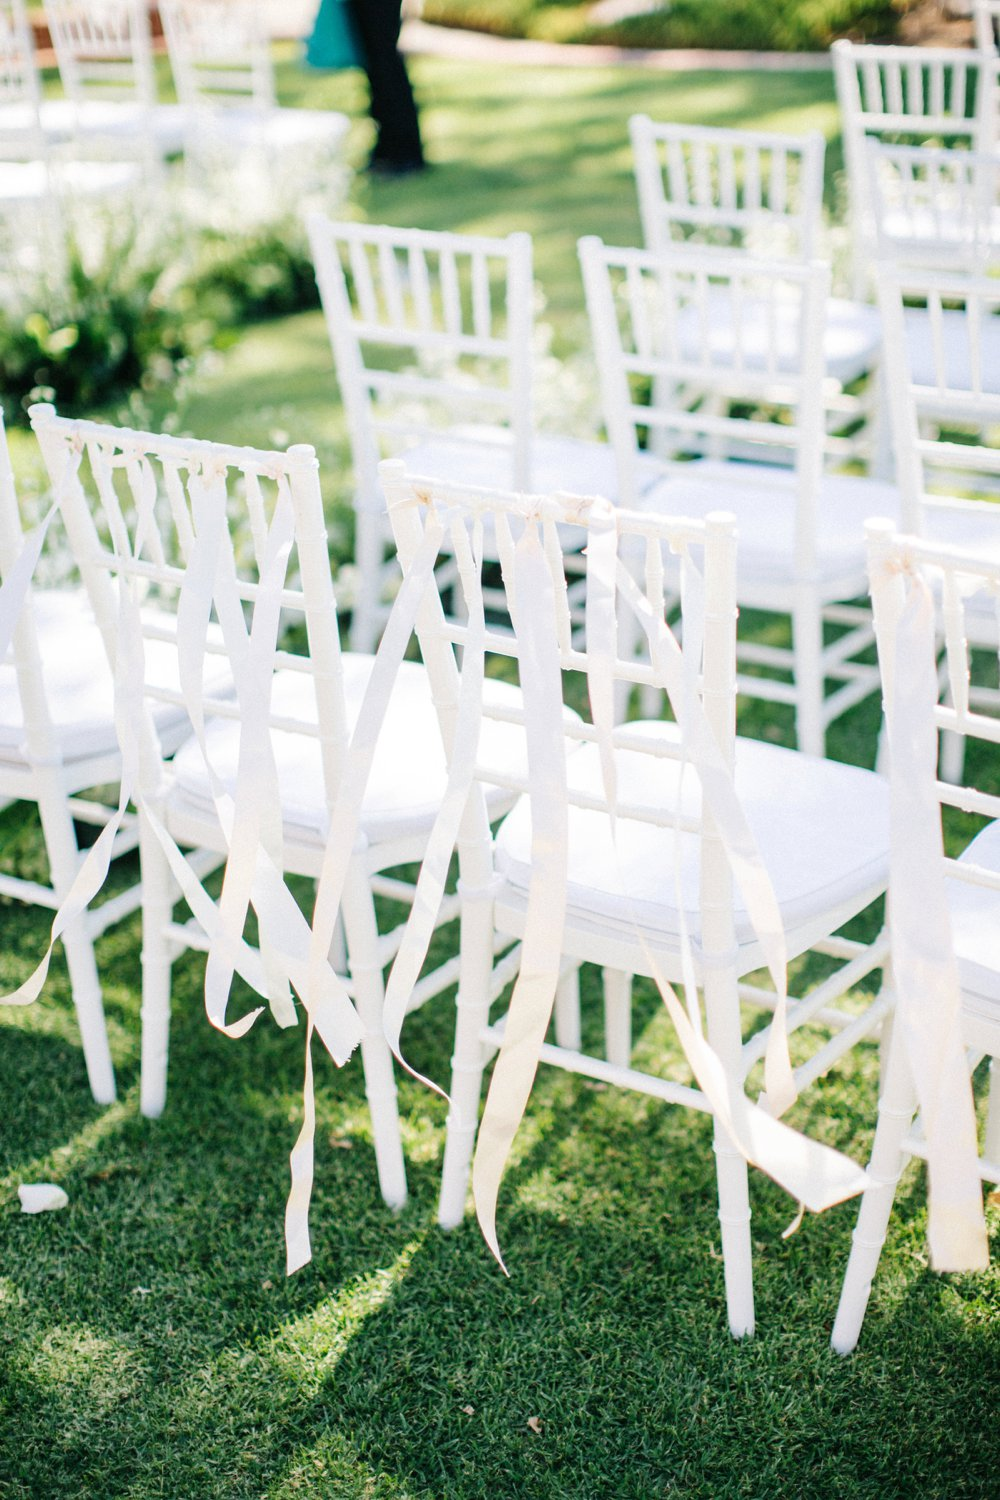 White Tiffany Chairs dressed with white ribbons